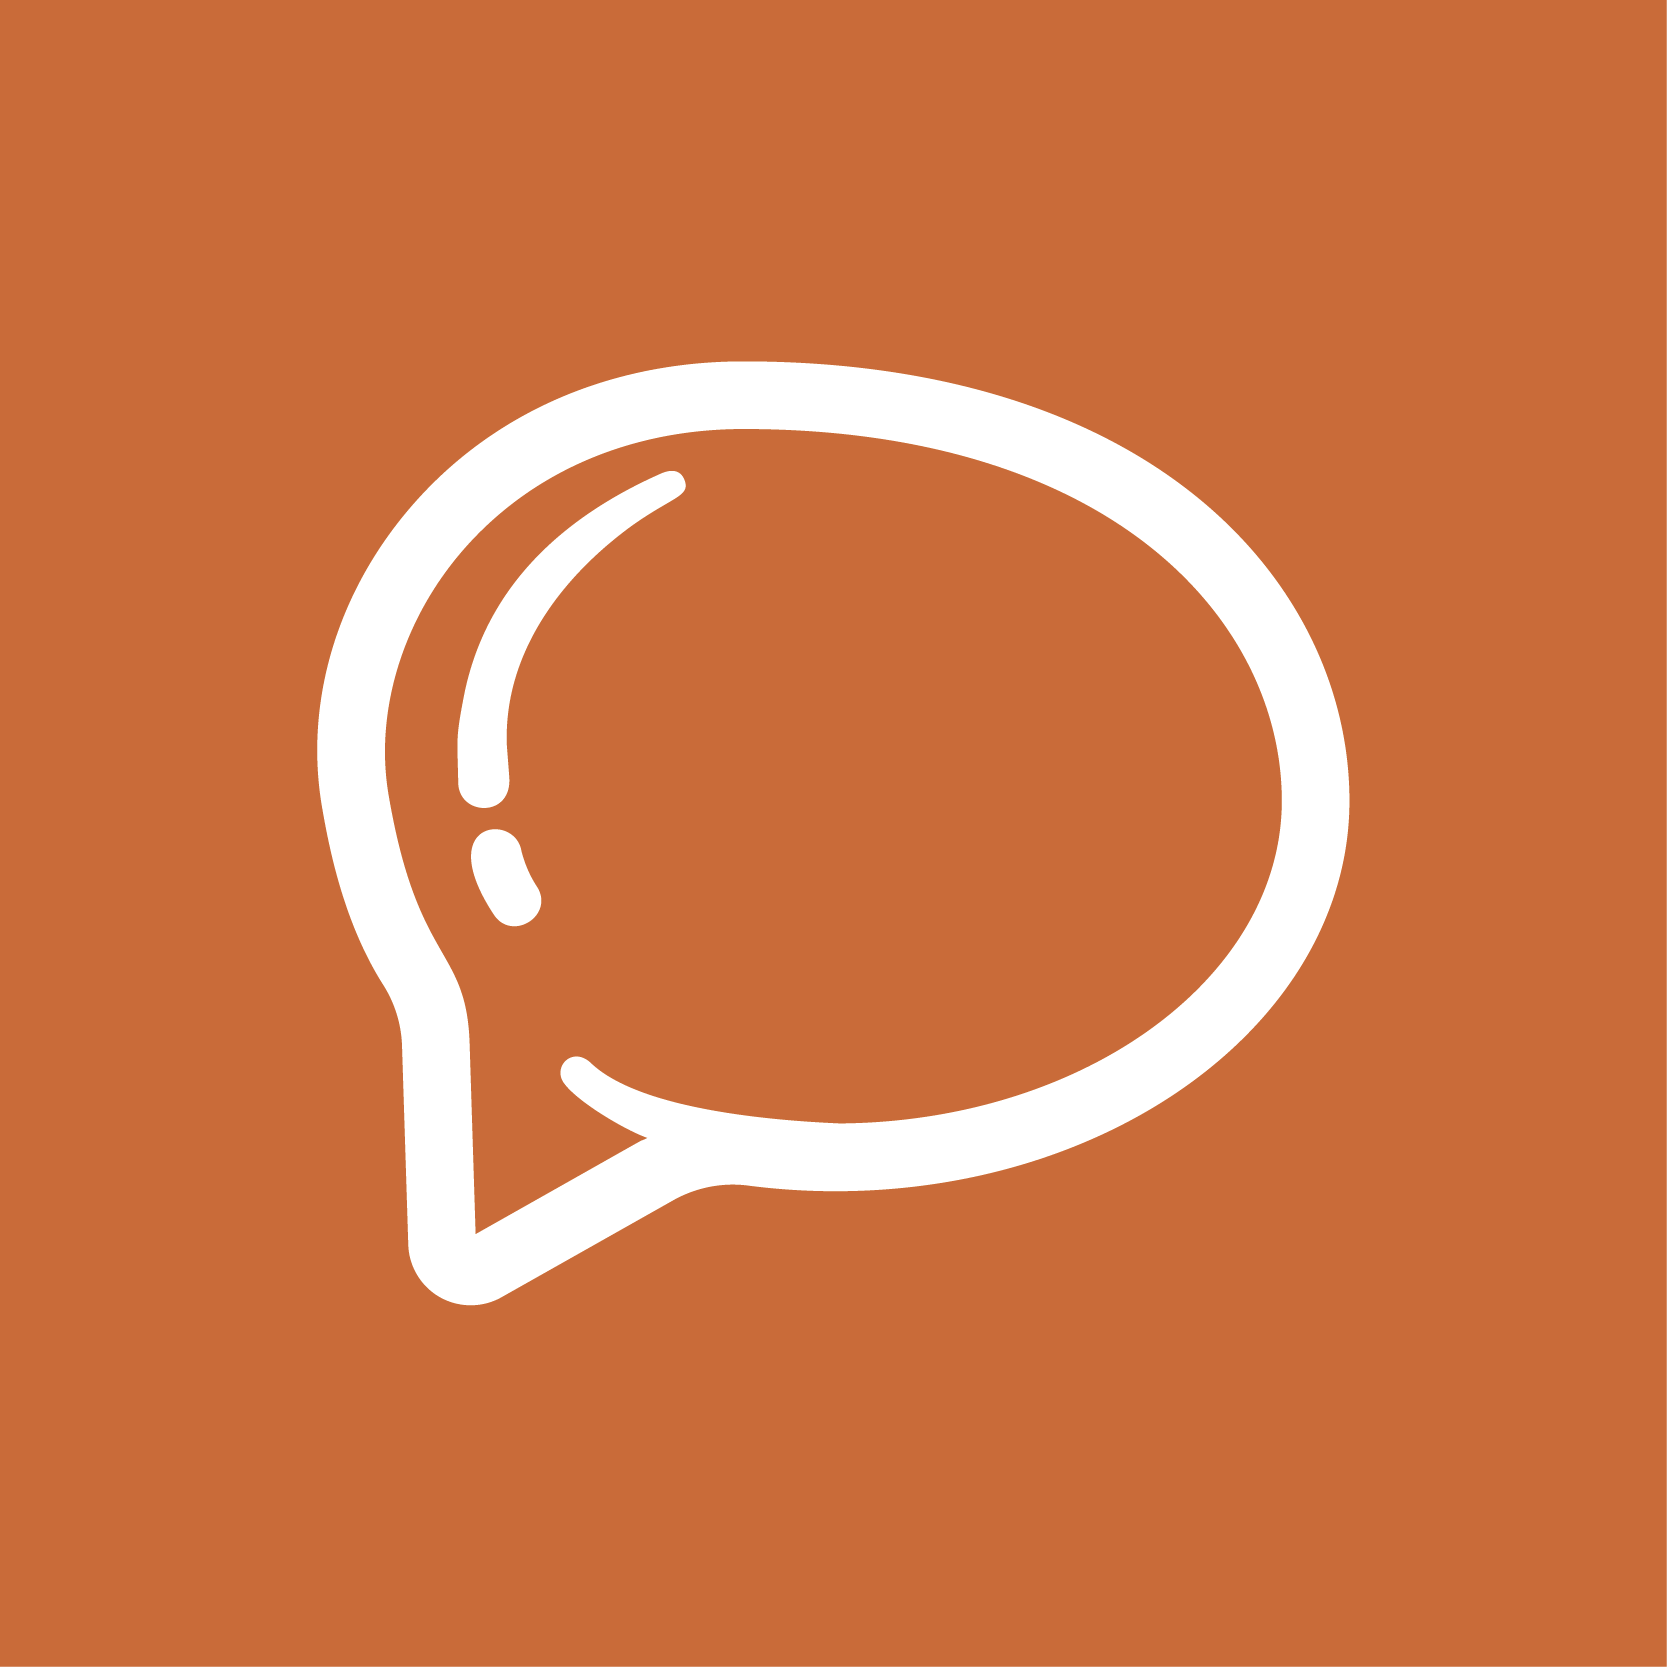 An orange square with a white speech bubble graphic